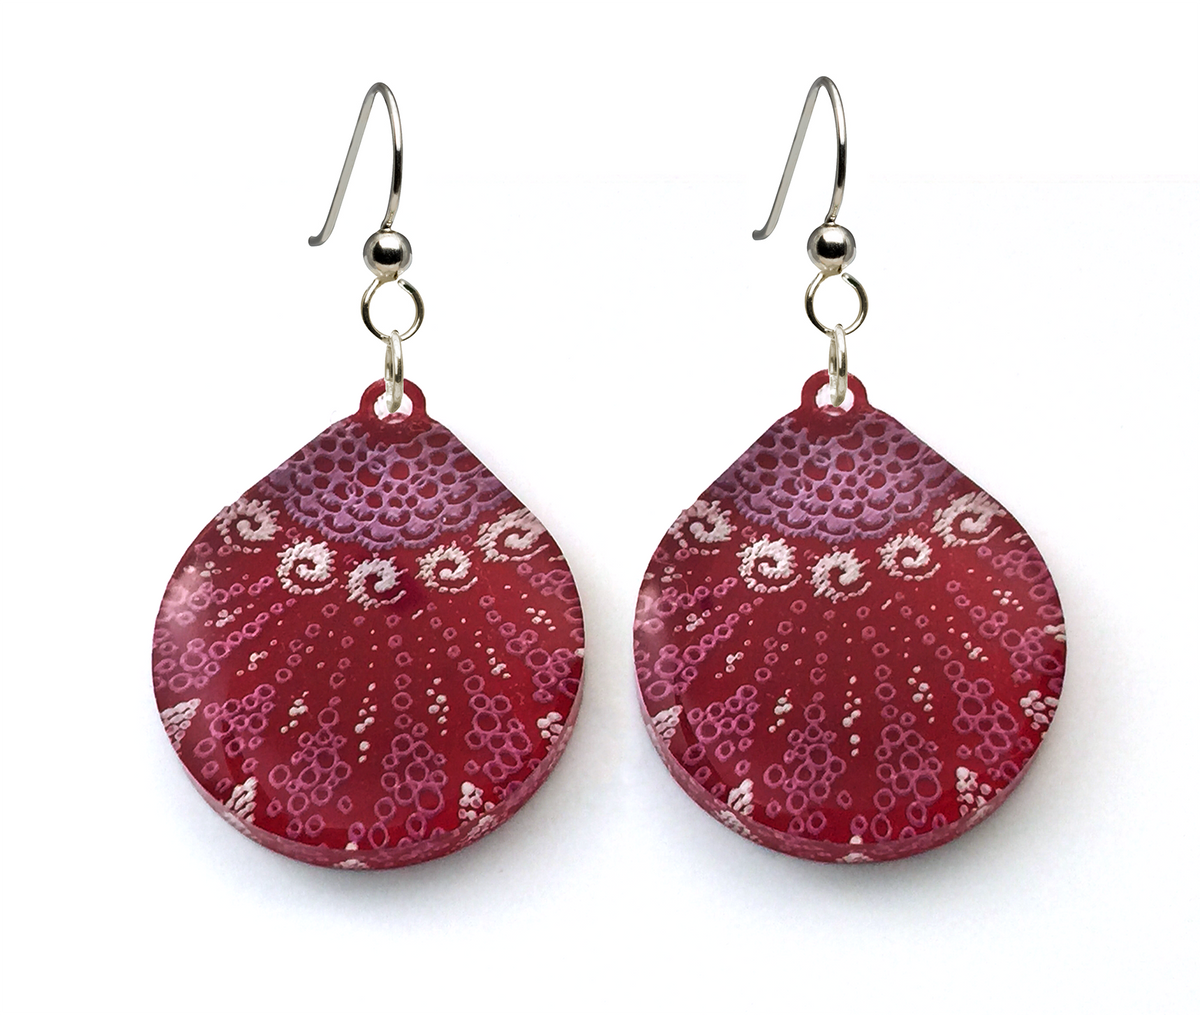 Starfish Earrings, Large Teardrop shape, Magenta, From Lab Partners Jewelry